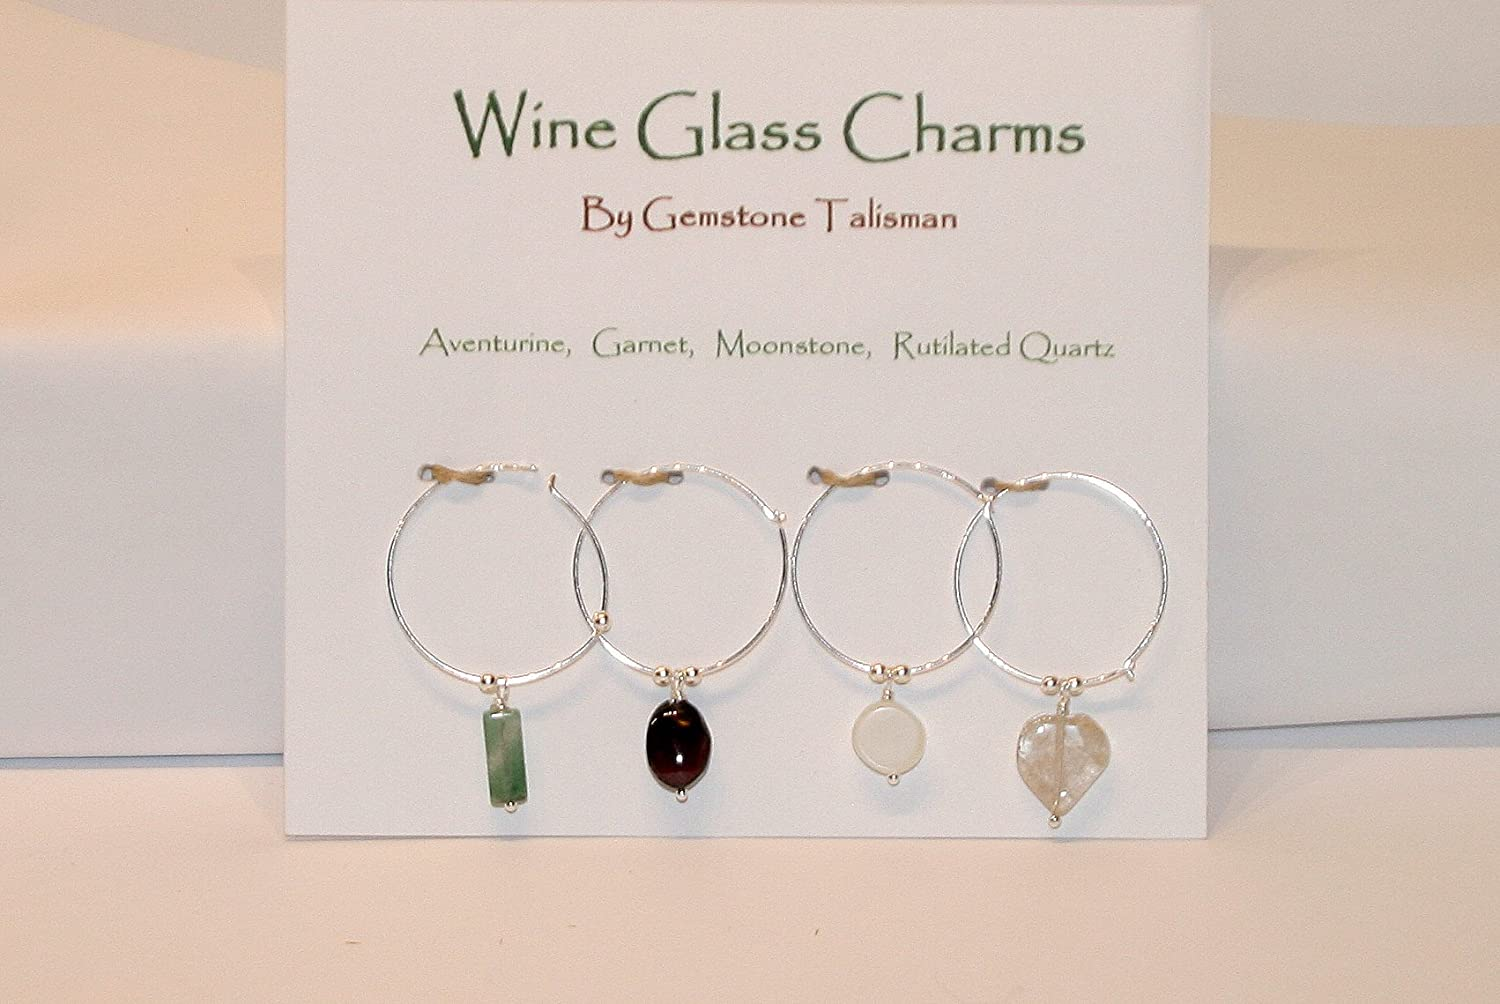 Wine Glass Tampa Mall Charms - Natural Gemstone and excellence o Set Silver Sterling